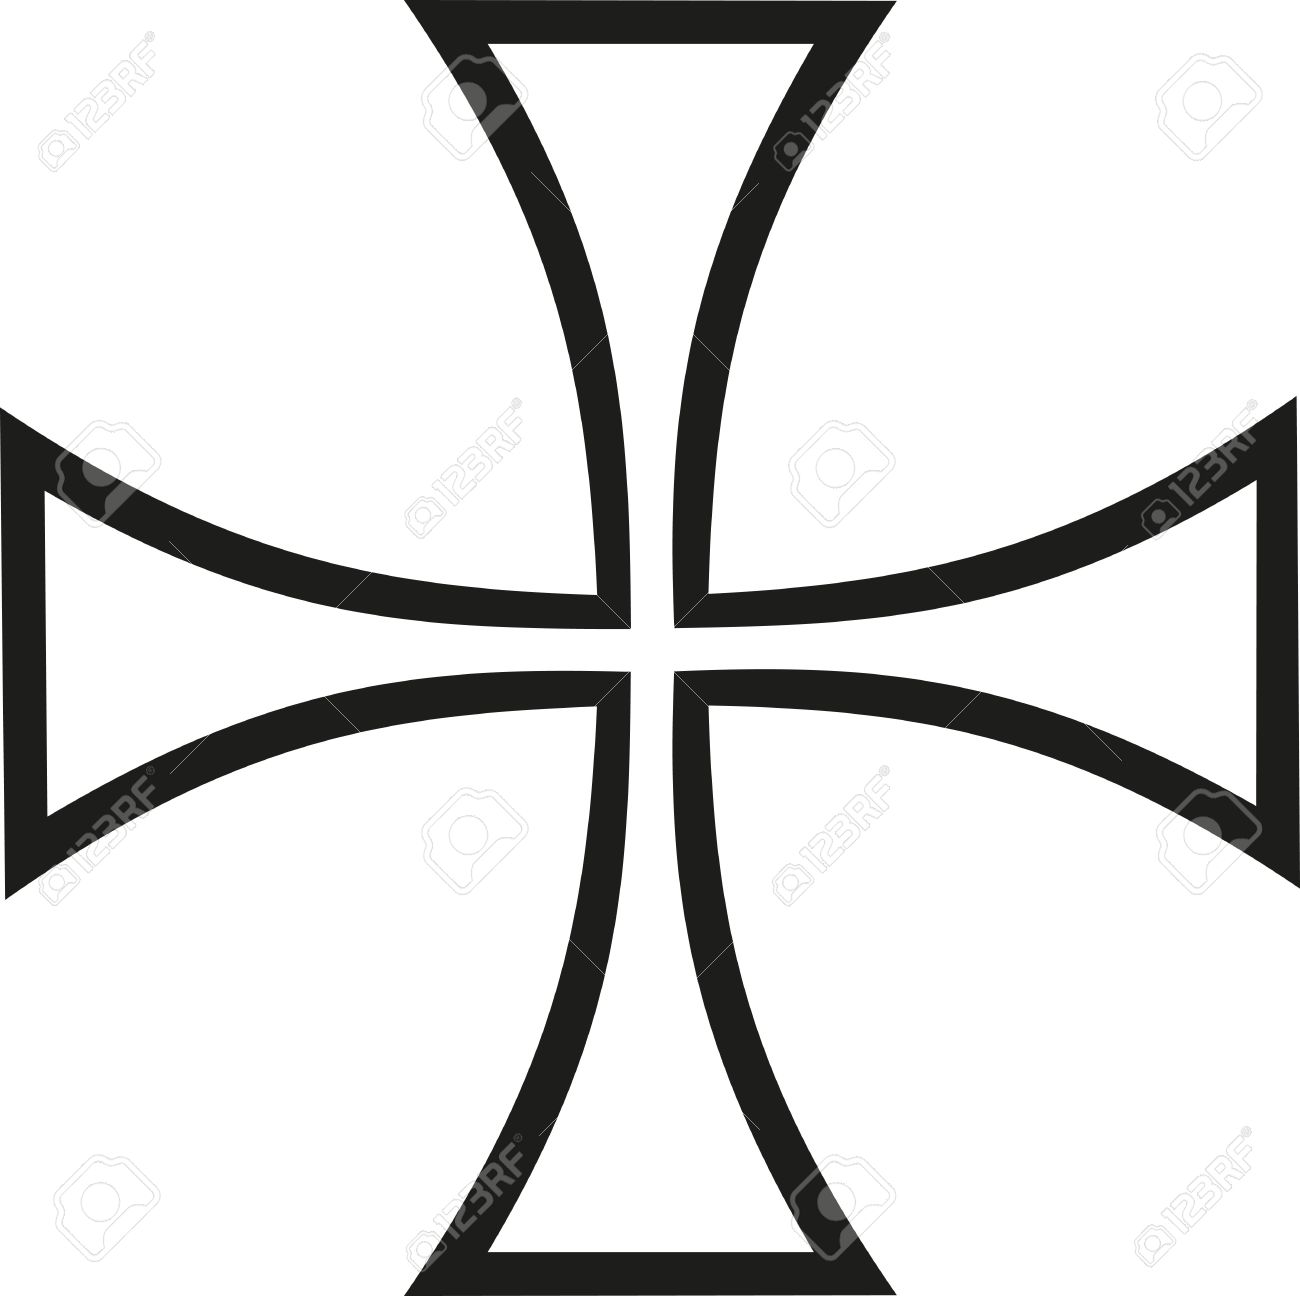 1300x1296 Thin Iron Cross Outline Royalty Free Cliparts, Vectors, And Stock